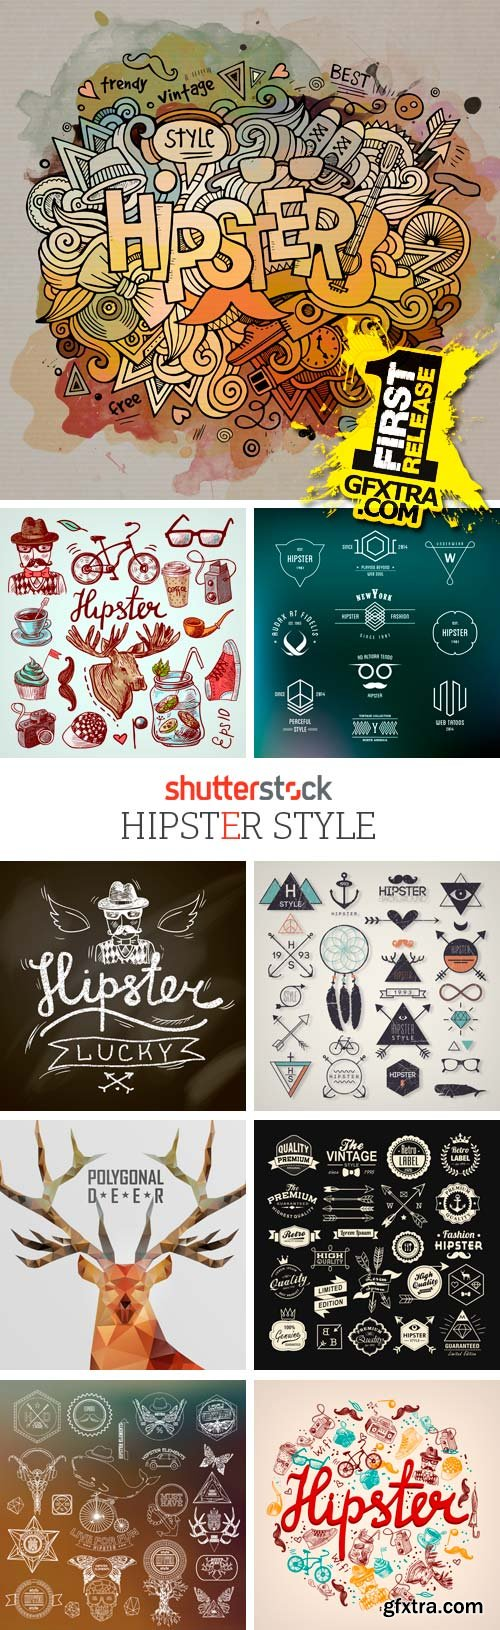 T shirt design 4 25x eps - Amazing Ss Hipster Style 25xeps